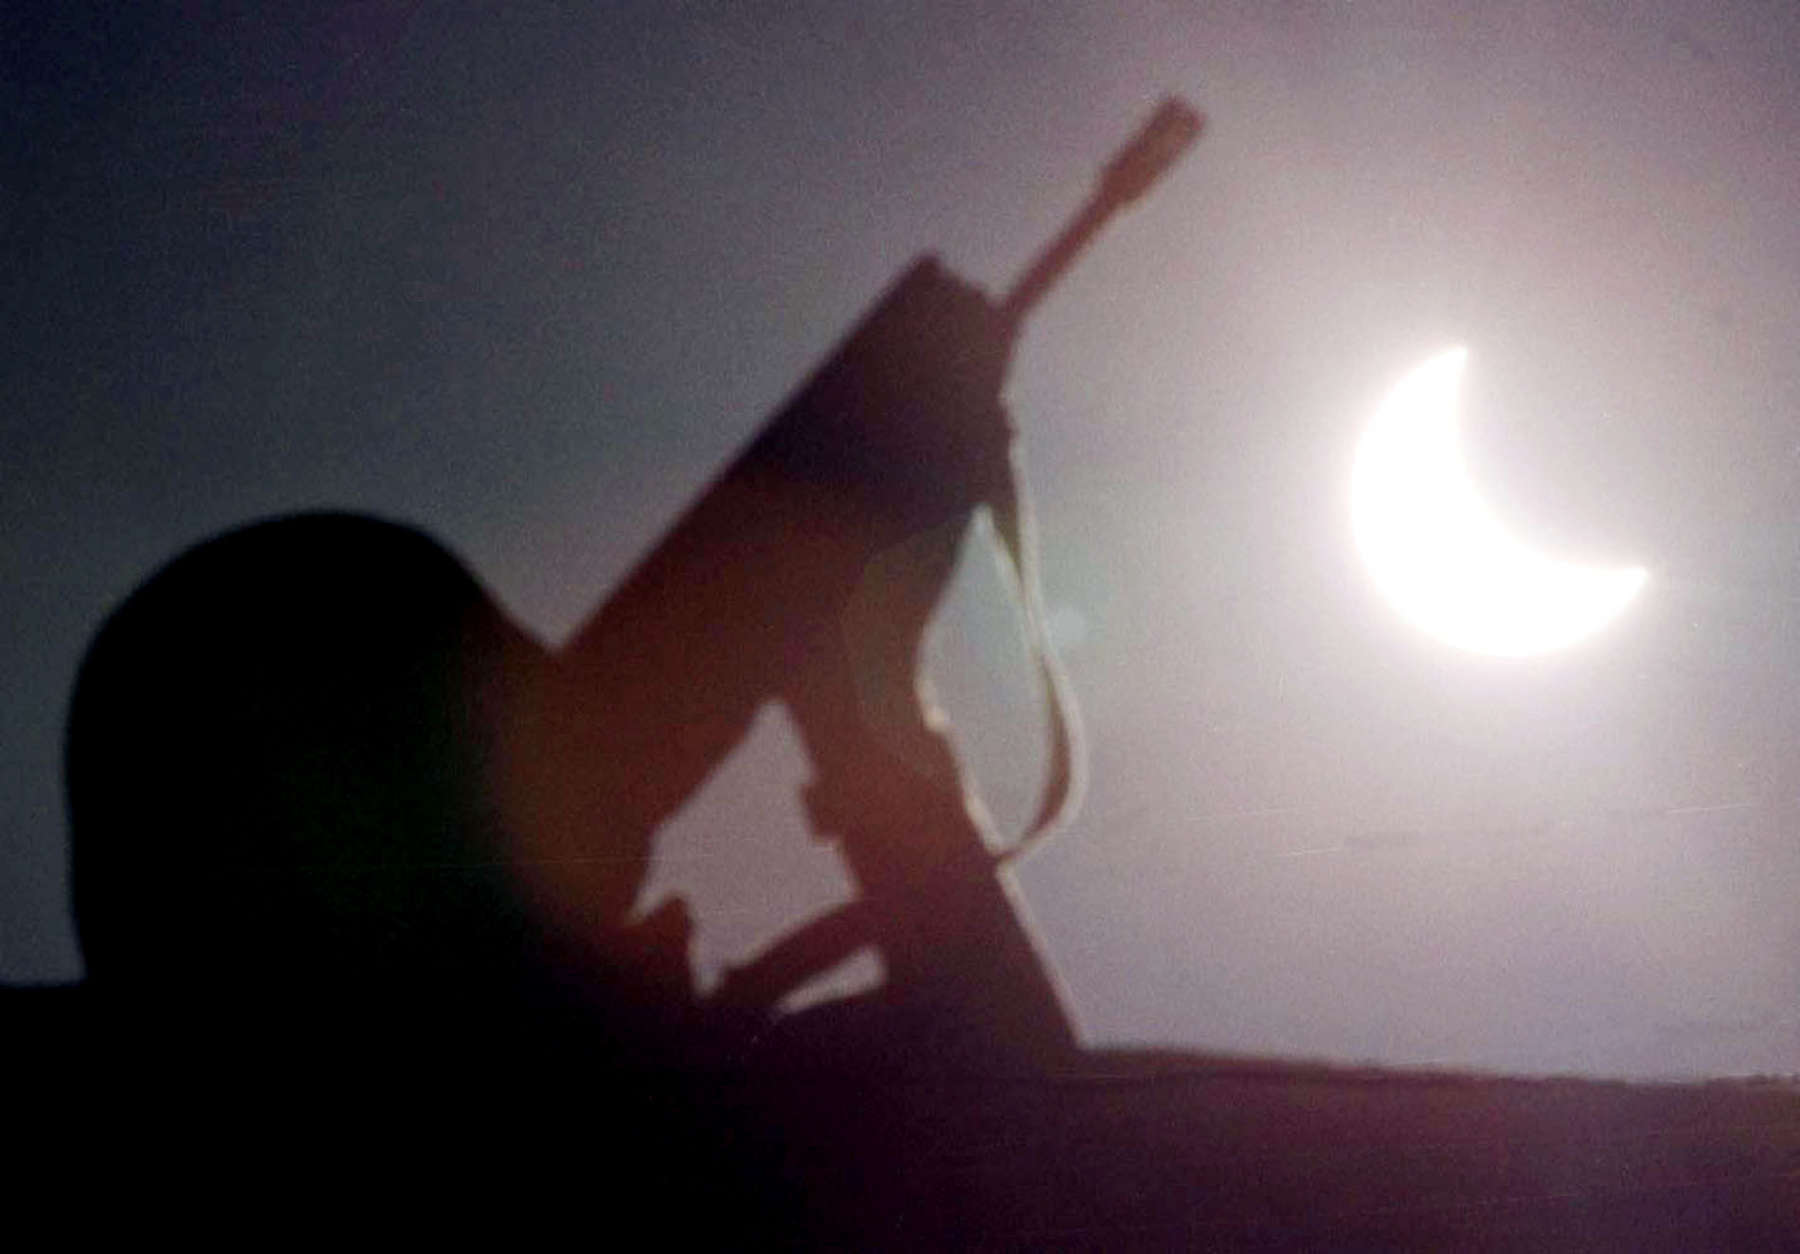 A French soldier, part of NATO's peacekeeping forces in Kosovo, stands guard beneath the solar eclipse on the ethnic Albanian side of the bridge dividing Kosovska Mitrovica, about 30 kilometers (20 miles) north of Pristina, Yugoslavia, Wednesday August 11, 1999. (AP Photo/Amel Emric)